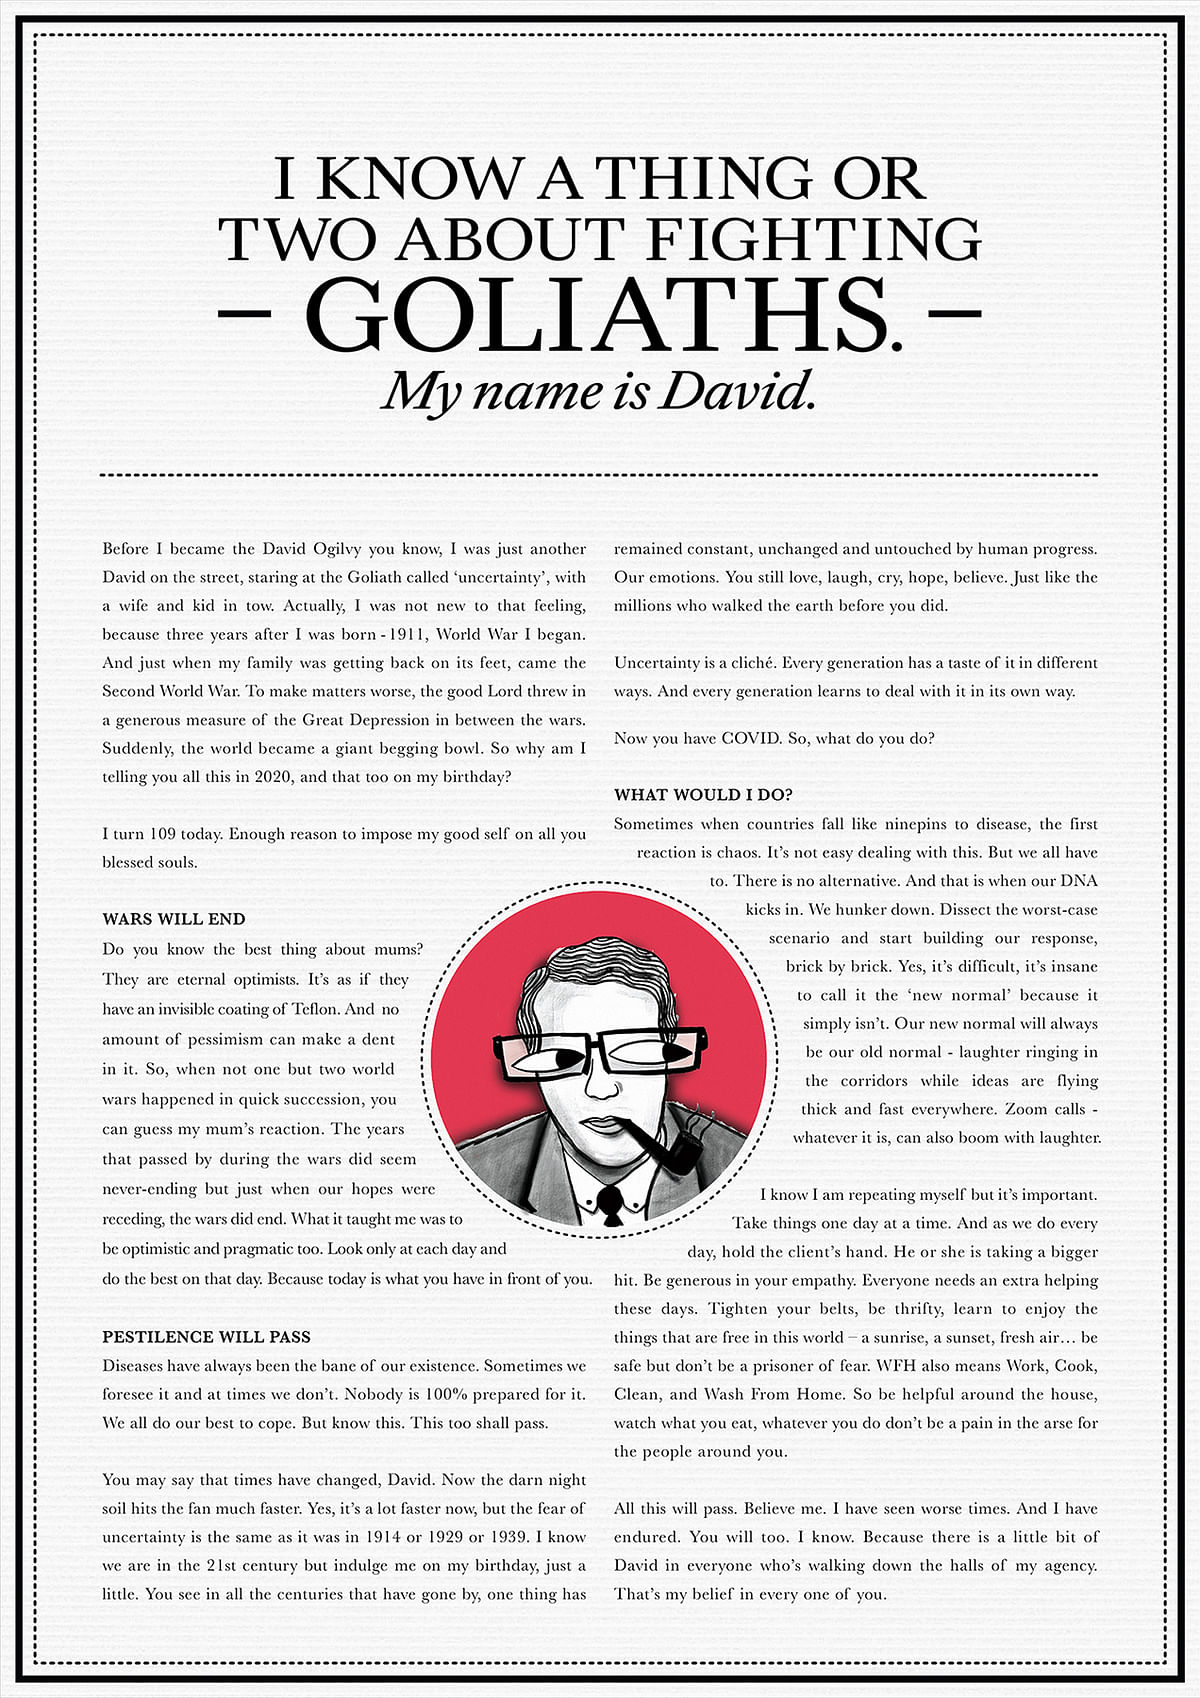 What if David Ogilvy comes to life and shares his experiences about the tough times...